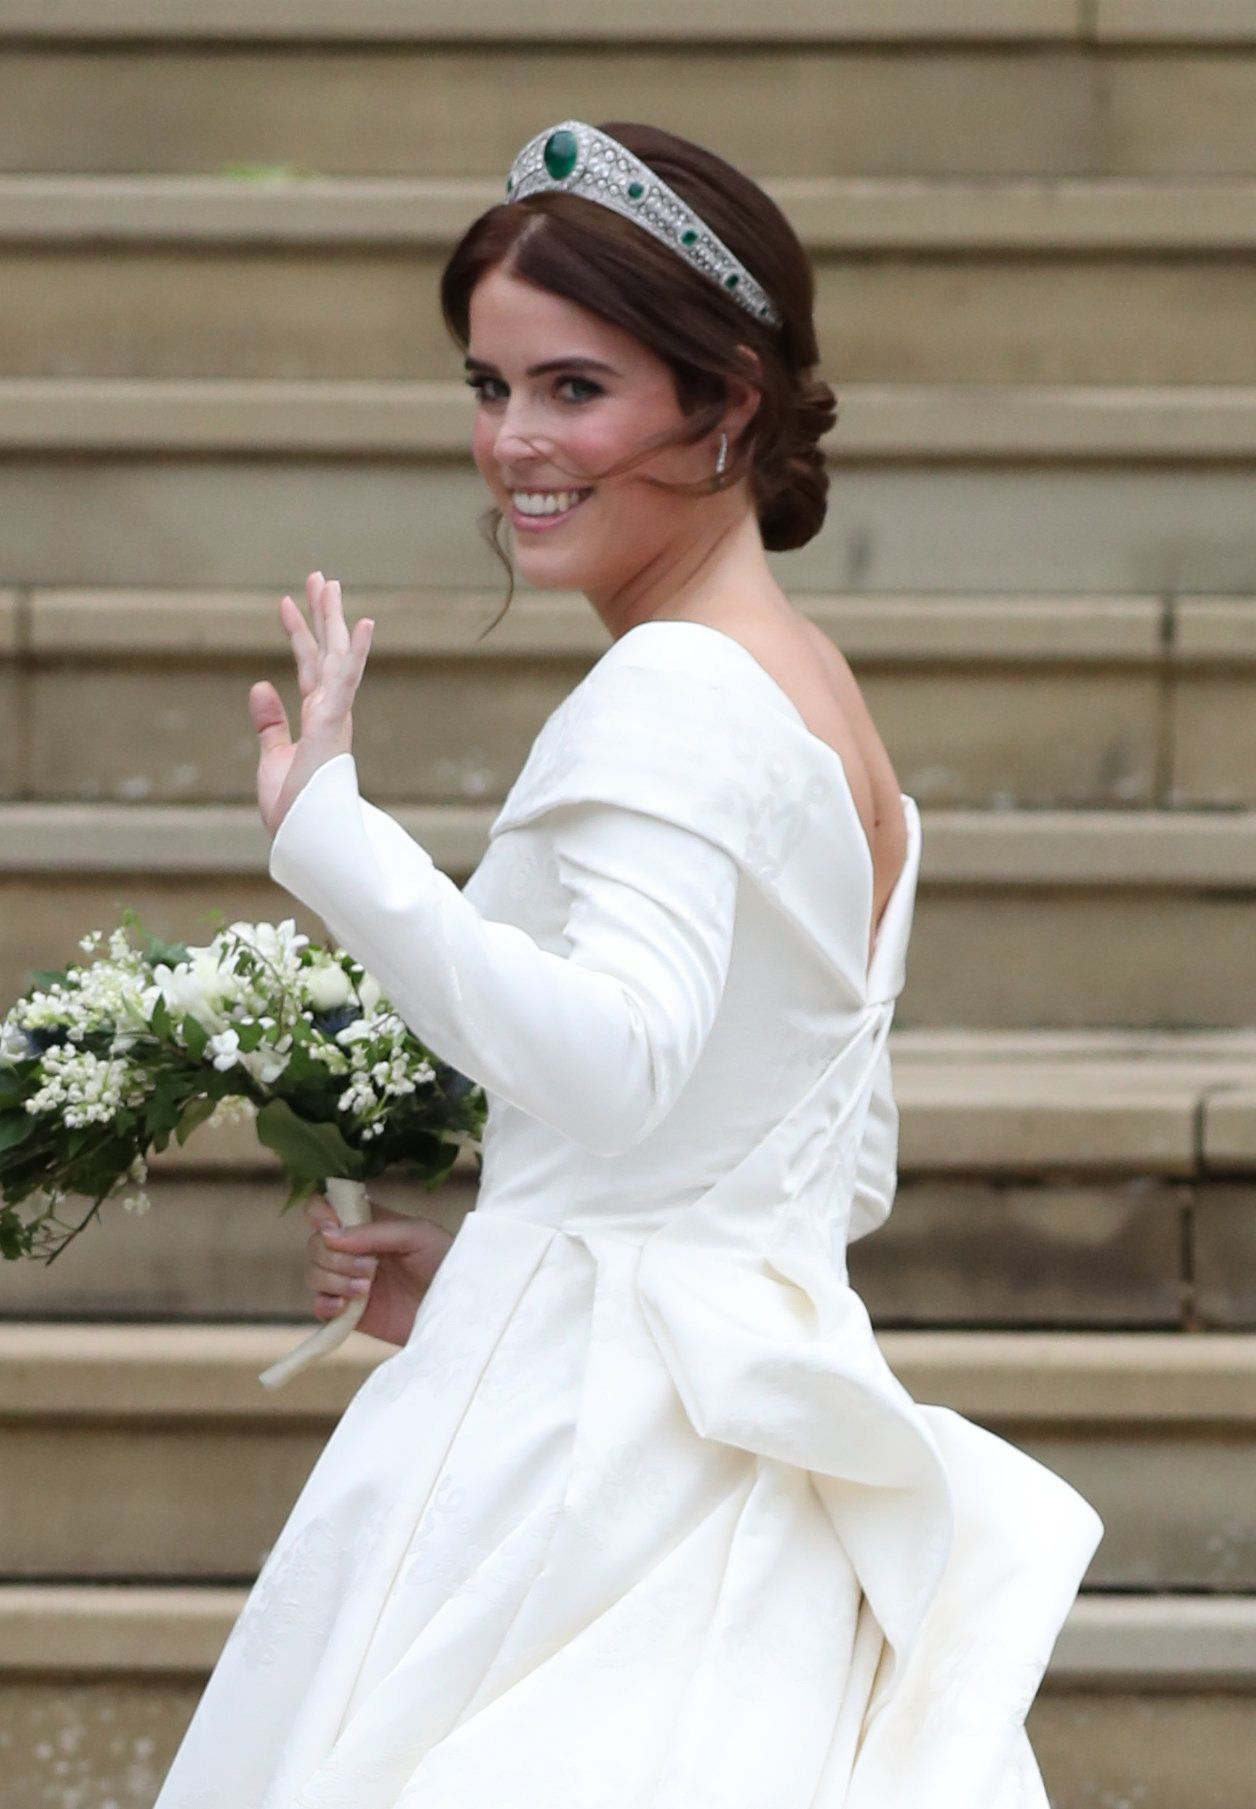 Princess Eugenie Wears Low-Back British Wedding